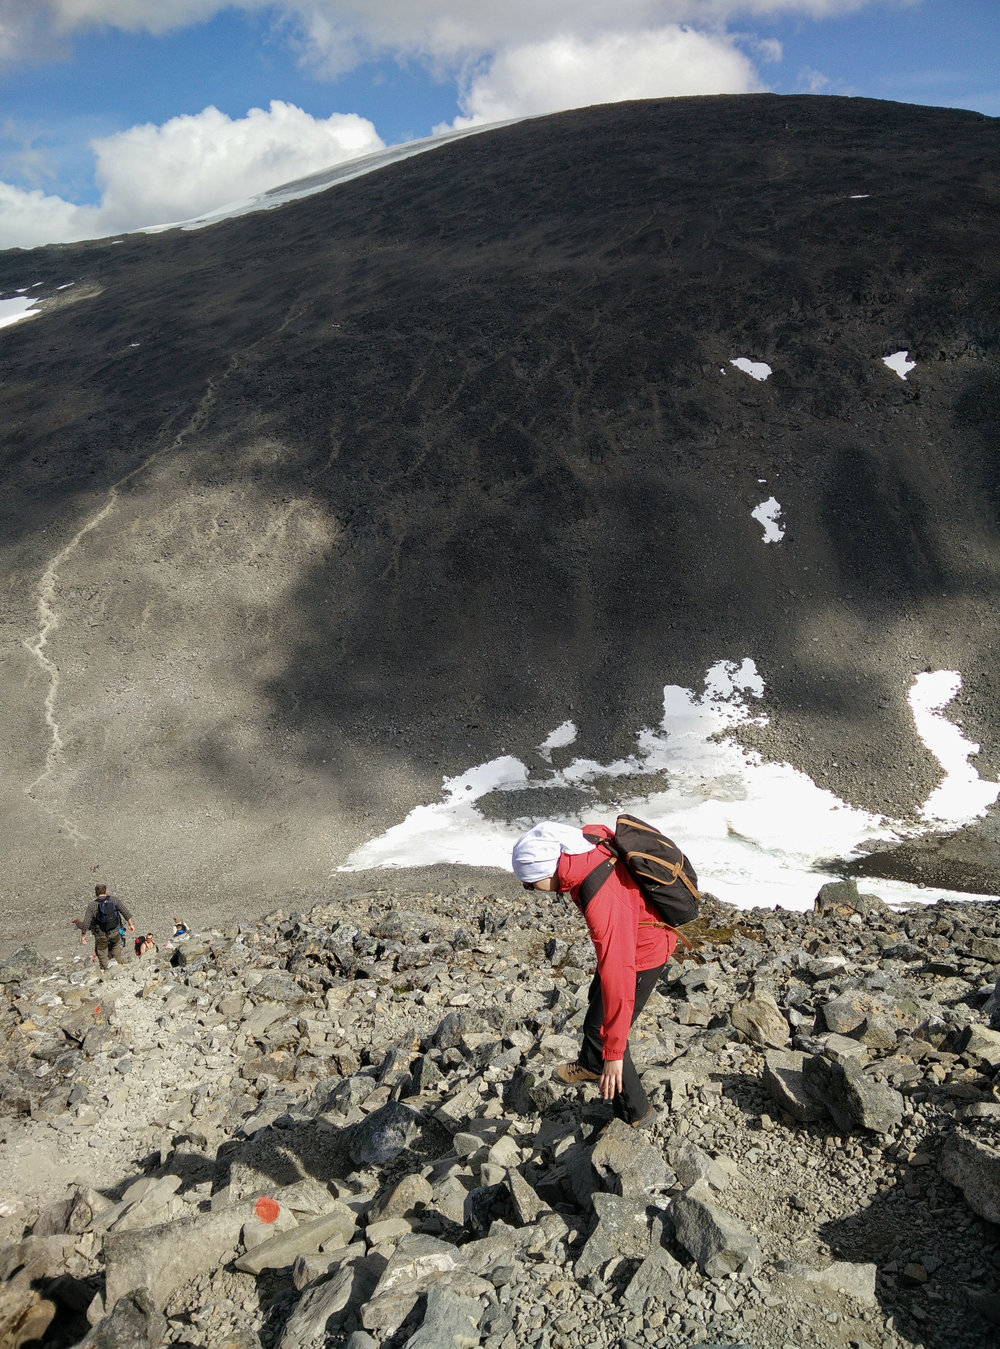 Descending from Vierramvare, Kebnekaise in the background